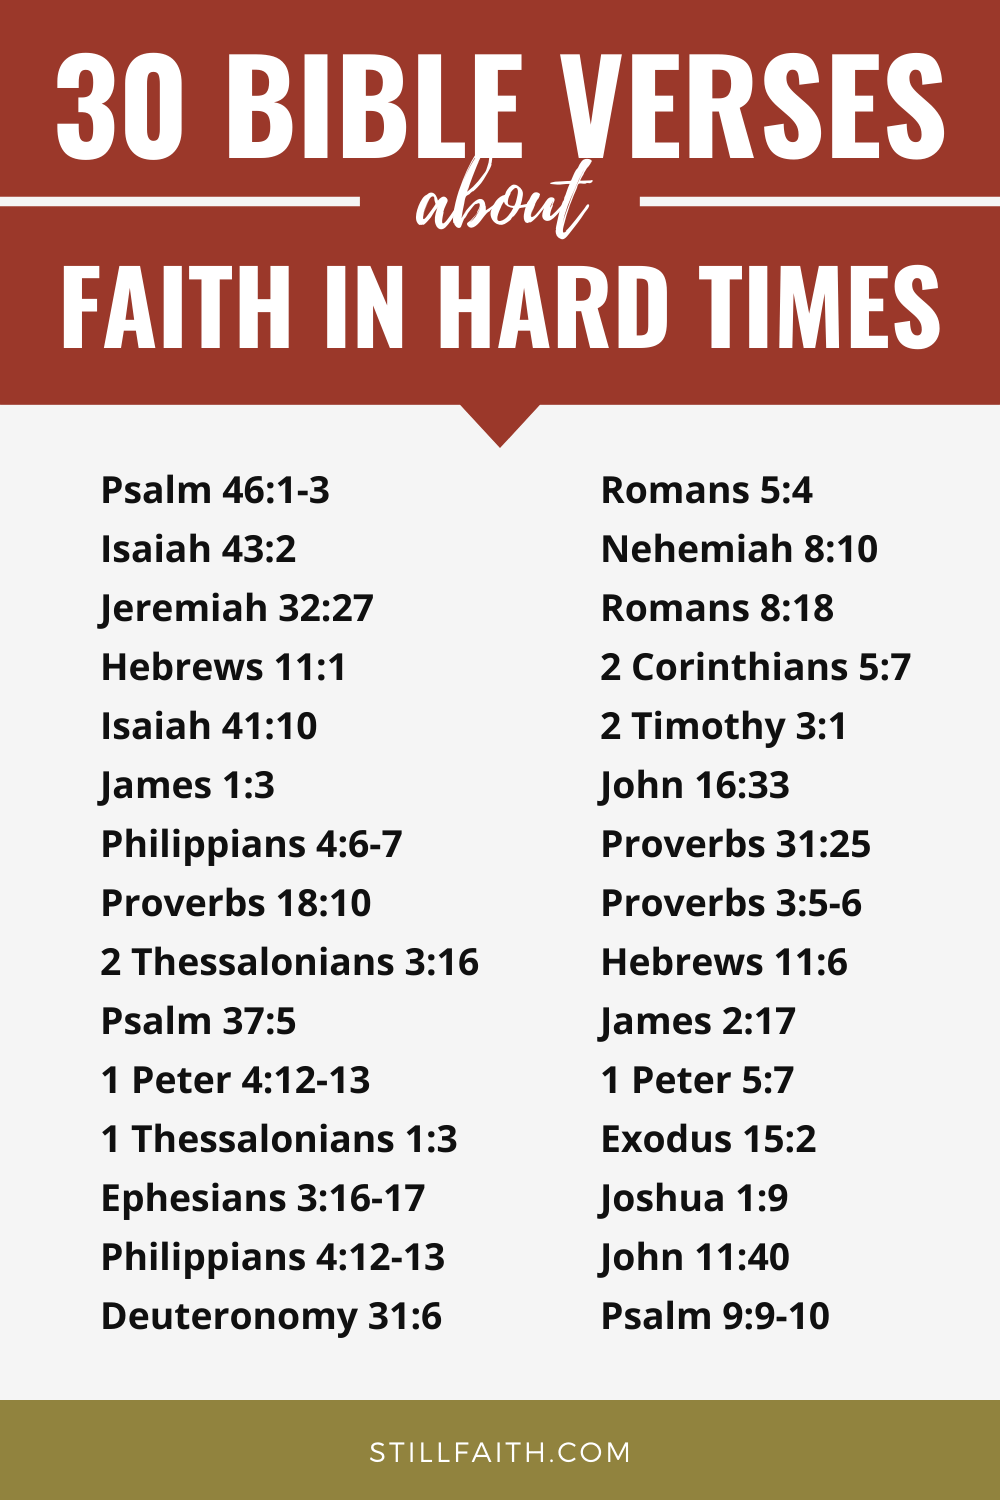 181 Bible Verses about Faith in Hard Times